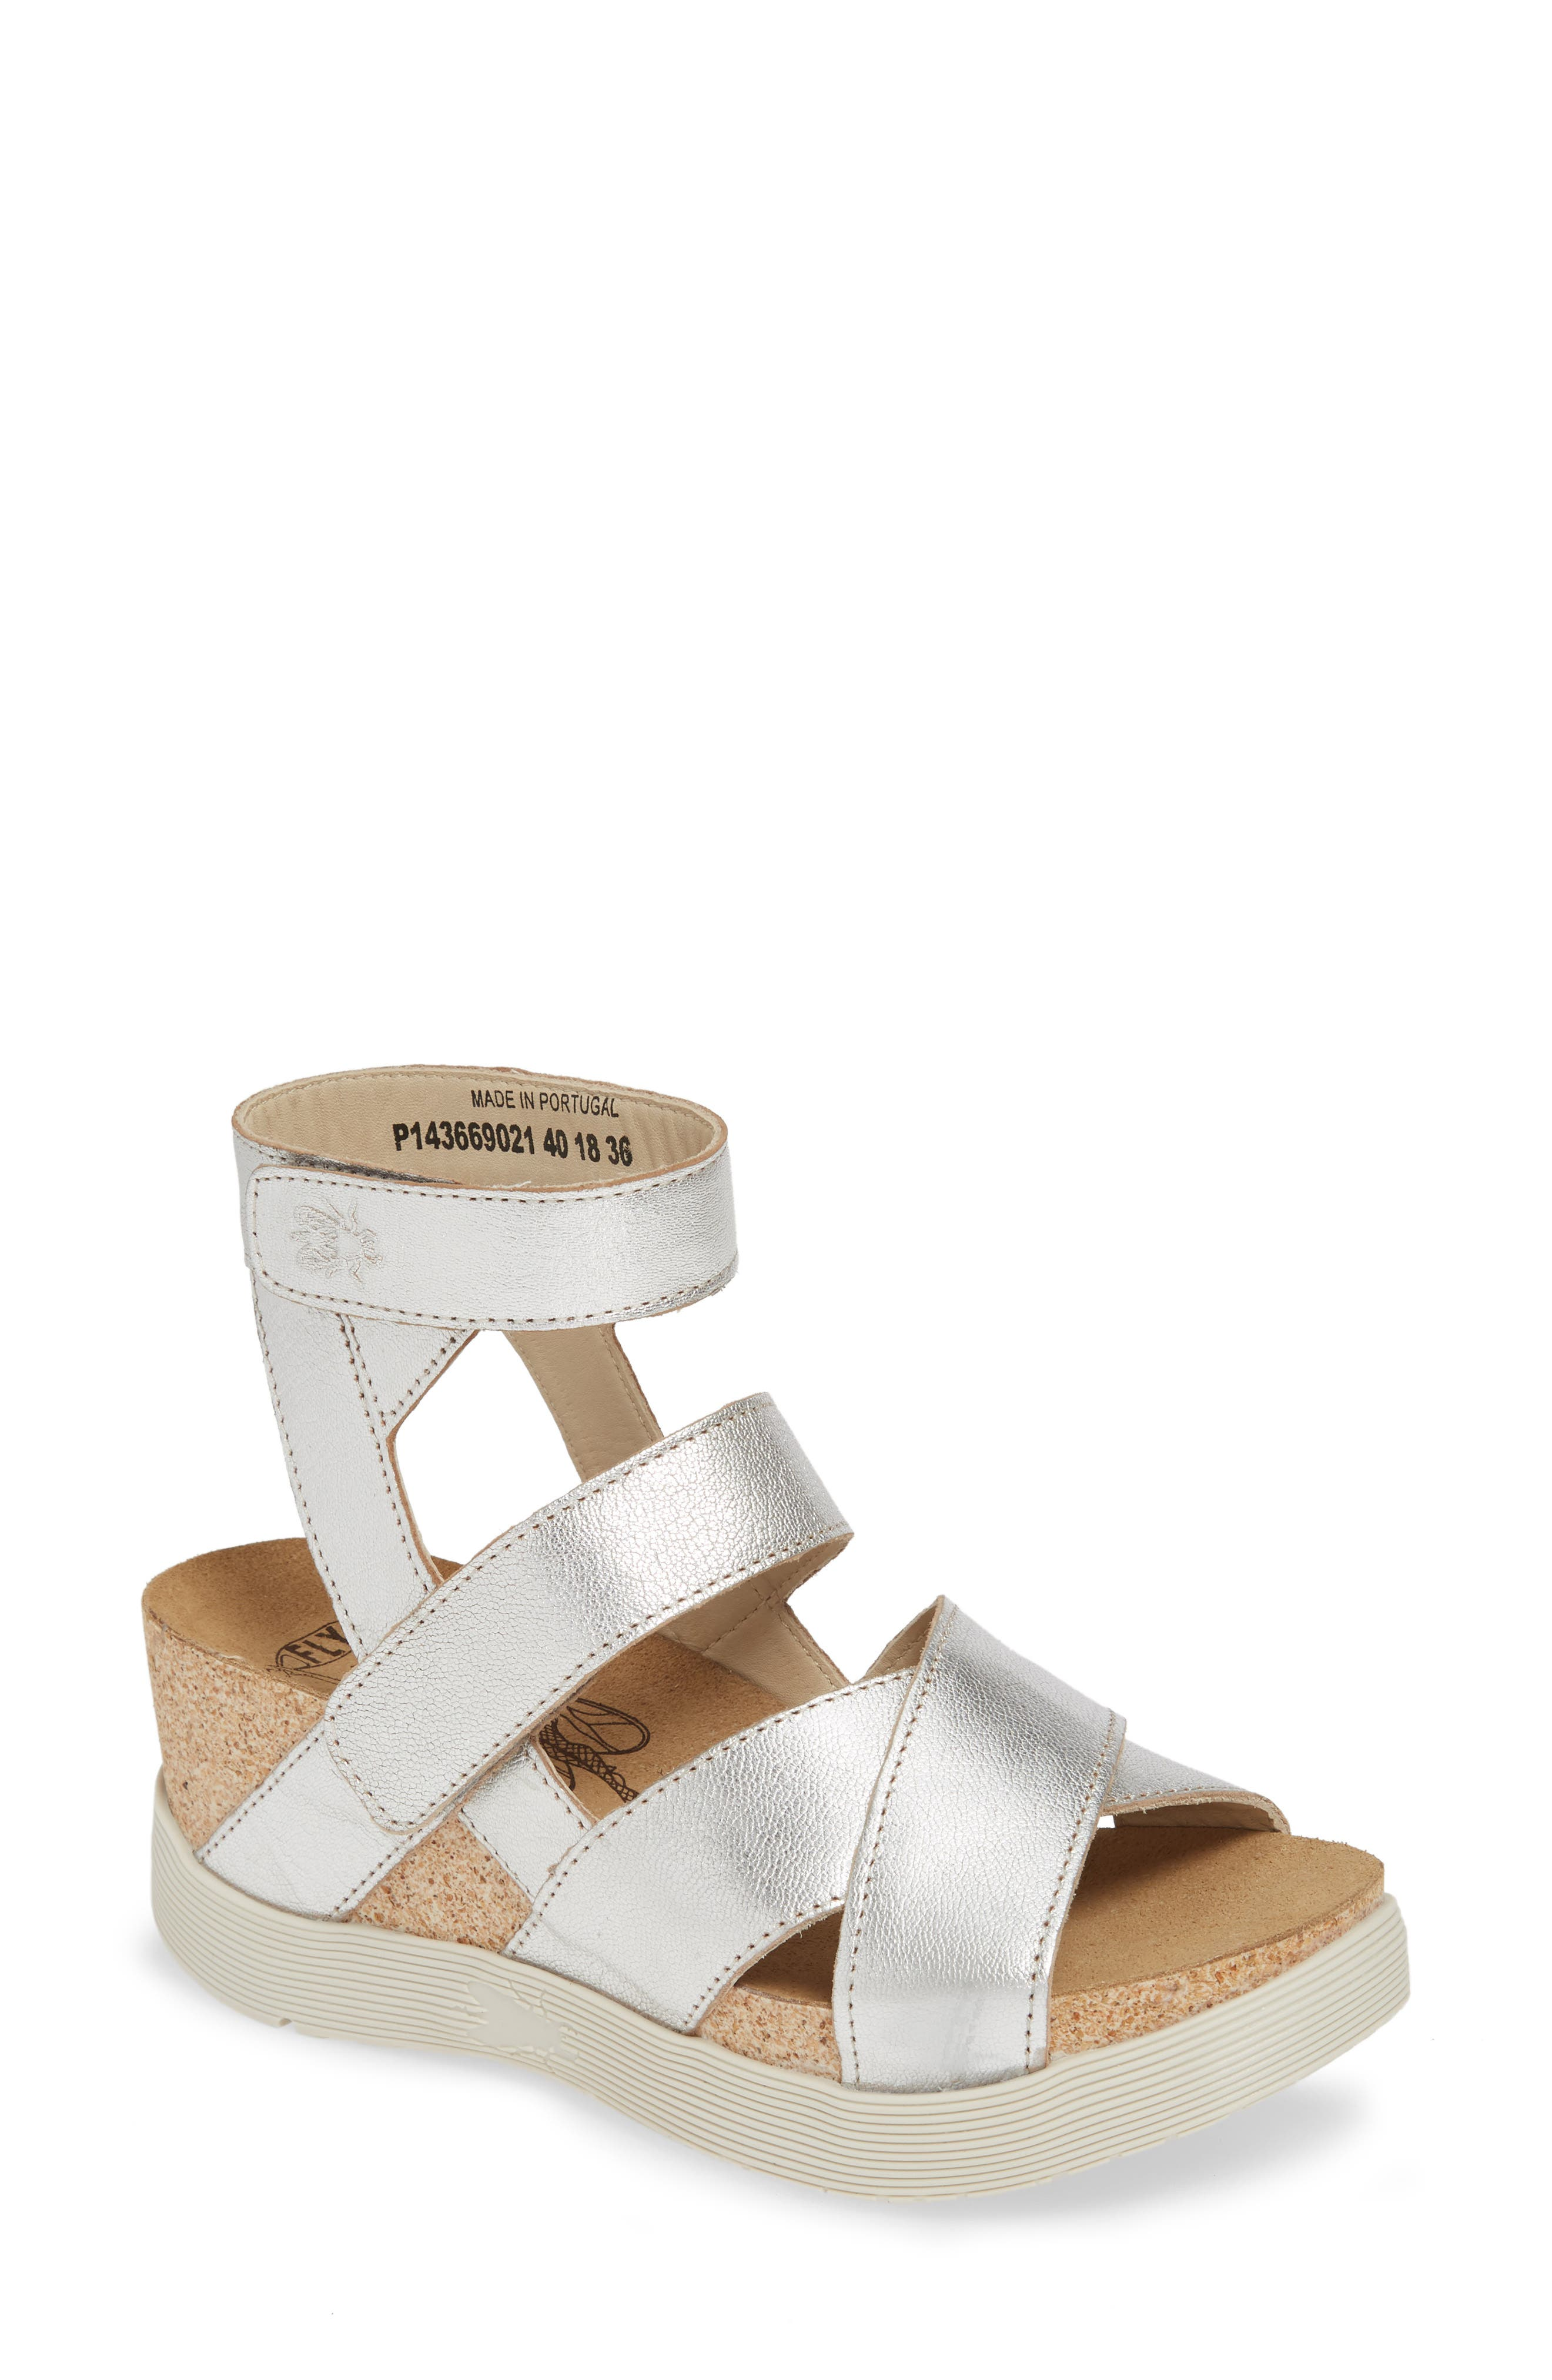 FLY LONDON, 'Wege' Leather Sandal, Main thumbnail 1, color, SILVER LEATHER